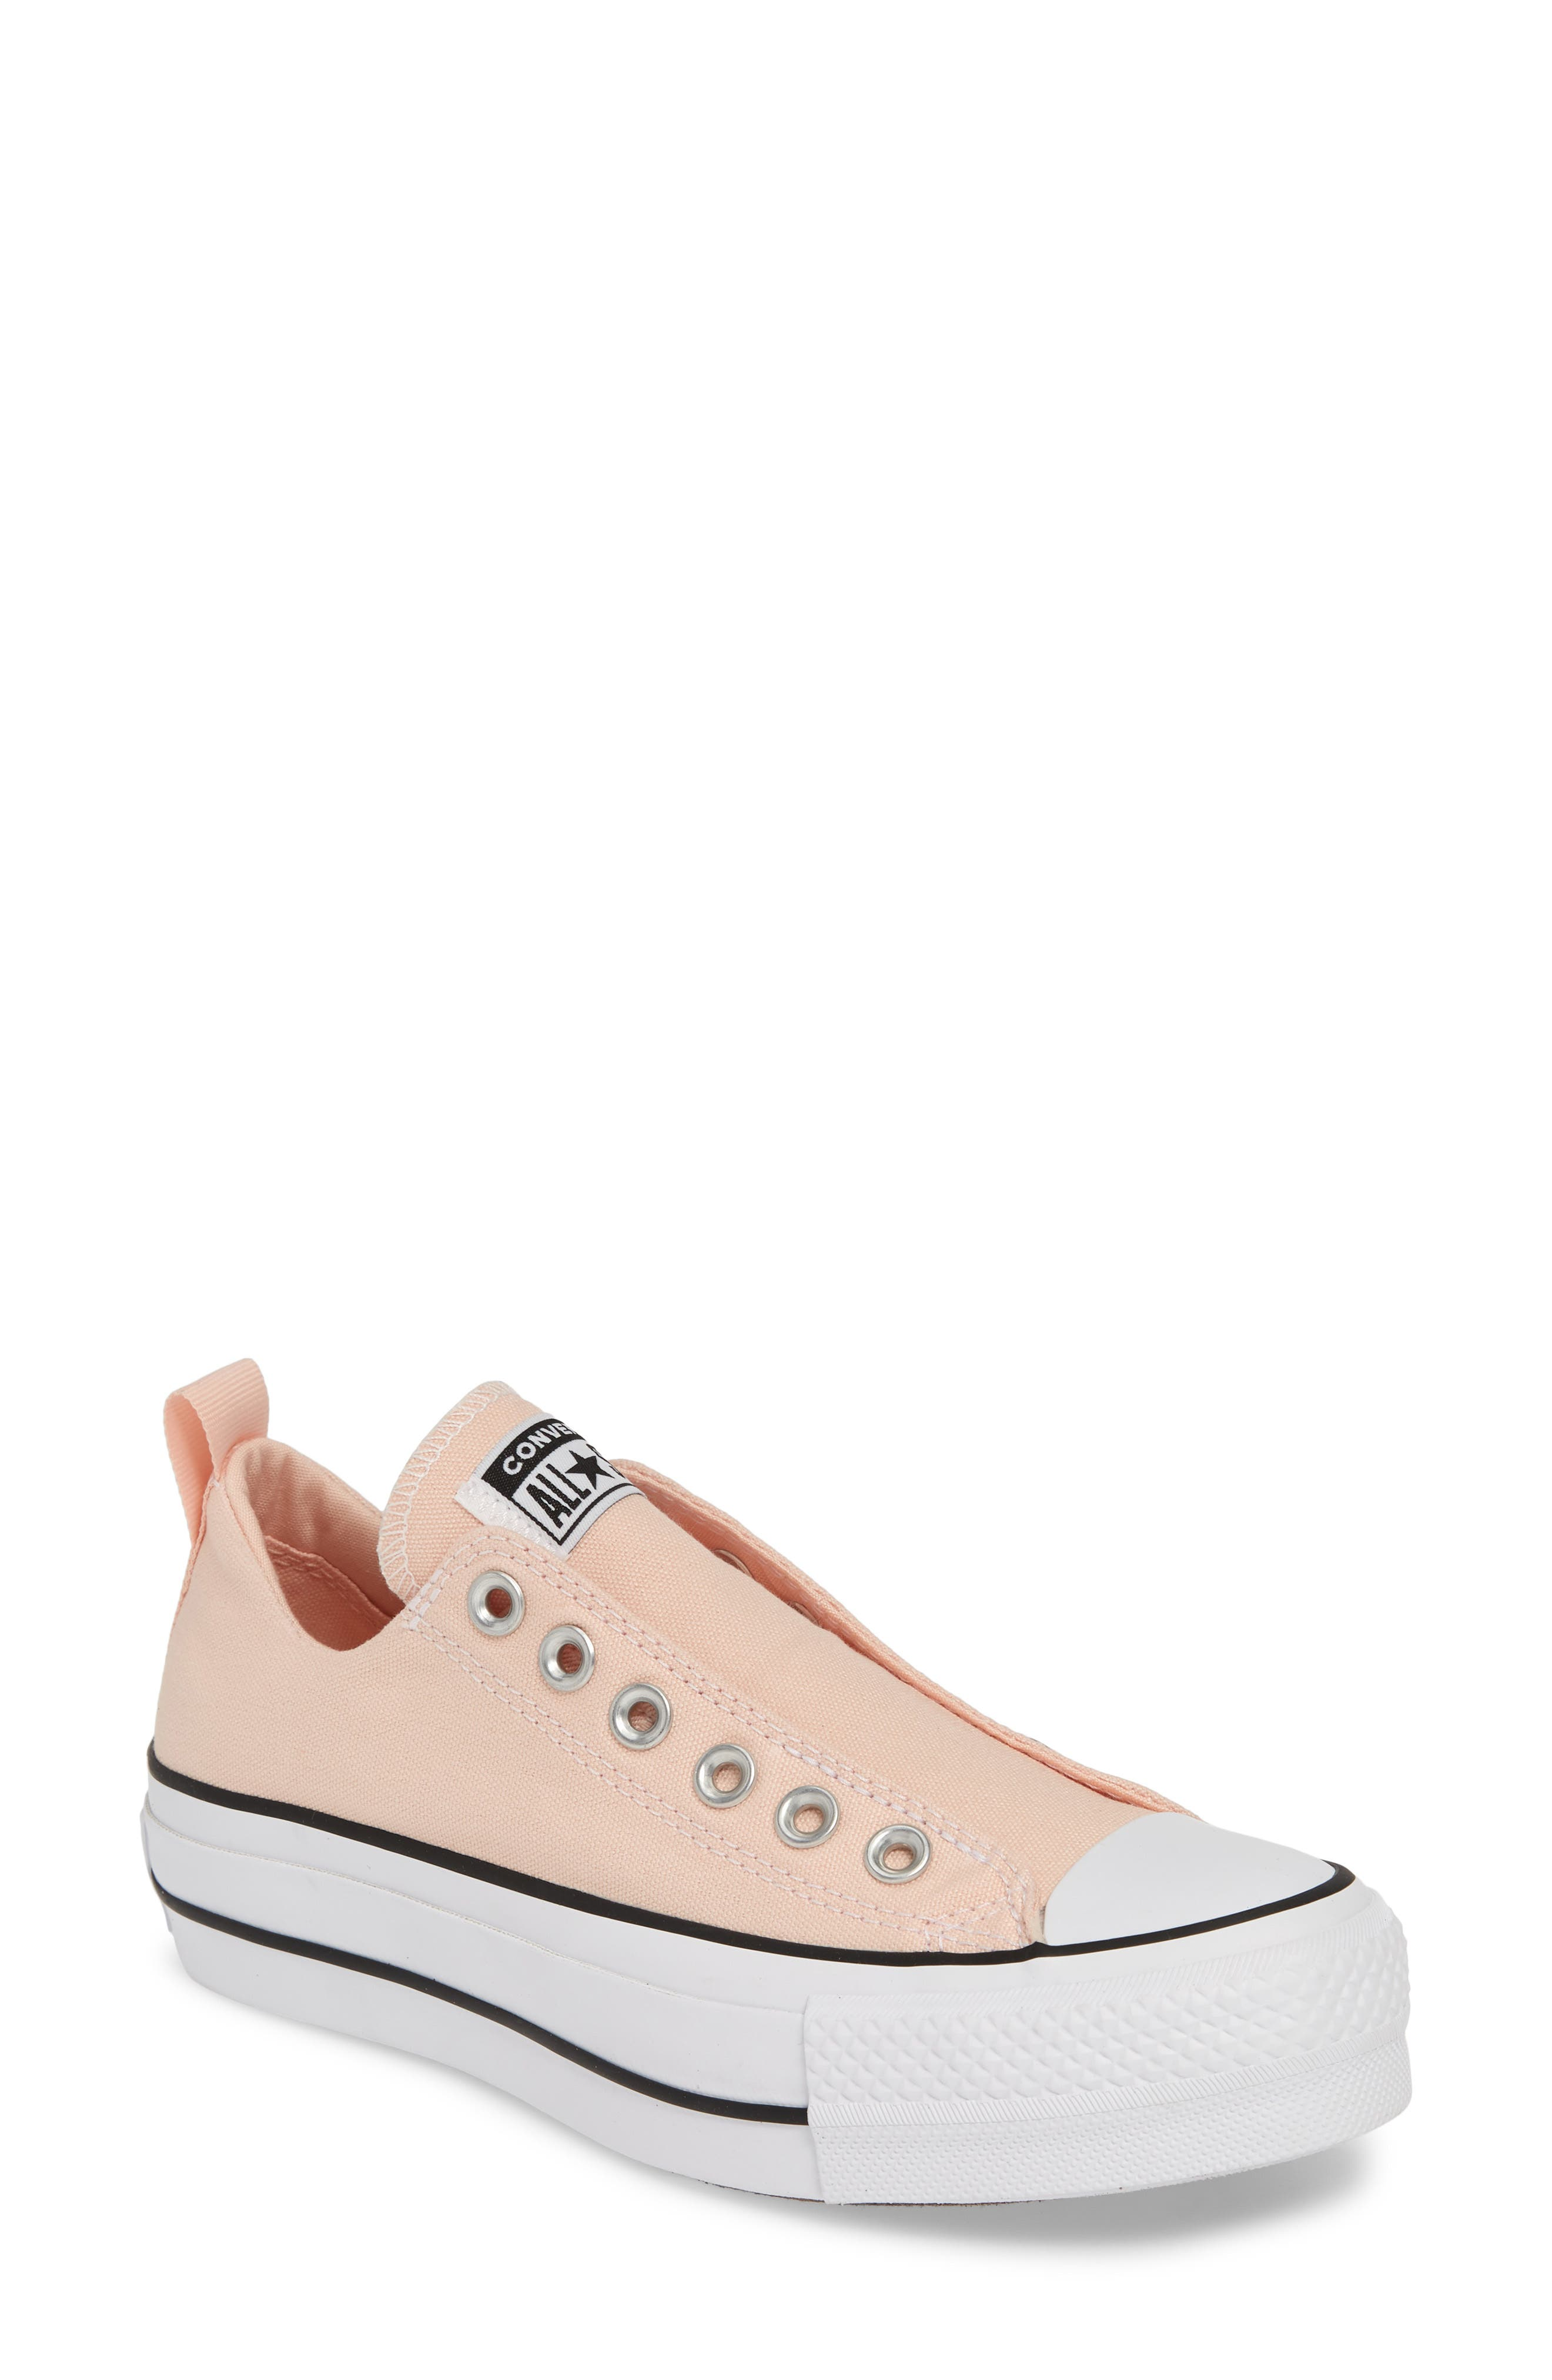 CONVERSE, Chuck Taylor<sup>®</sup> All Star<sup>®</sup> Lift Slip-On Sneaker, Main thumbnail 1, color, WASHED CORAL/ WHITE/ BLACK